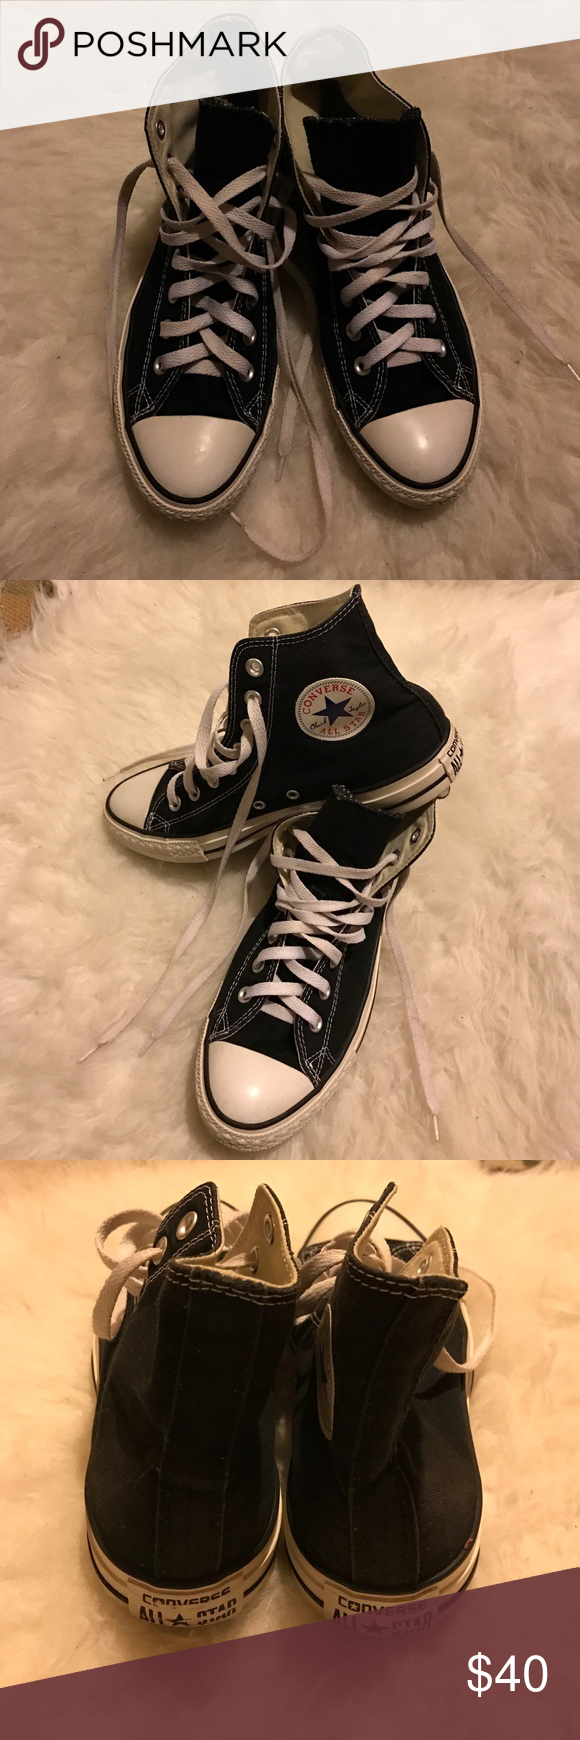 Black Chuck Taylors Got these high tops for a Halloween costume this year; worn once. They were really comfy, not really my style though. They're labeled as 9 for women (7.5 for men) , but I think they fit more as a 9.5 for women. I bet you can make 'em work! Converse Shoes